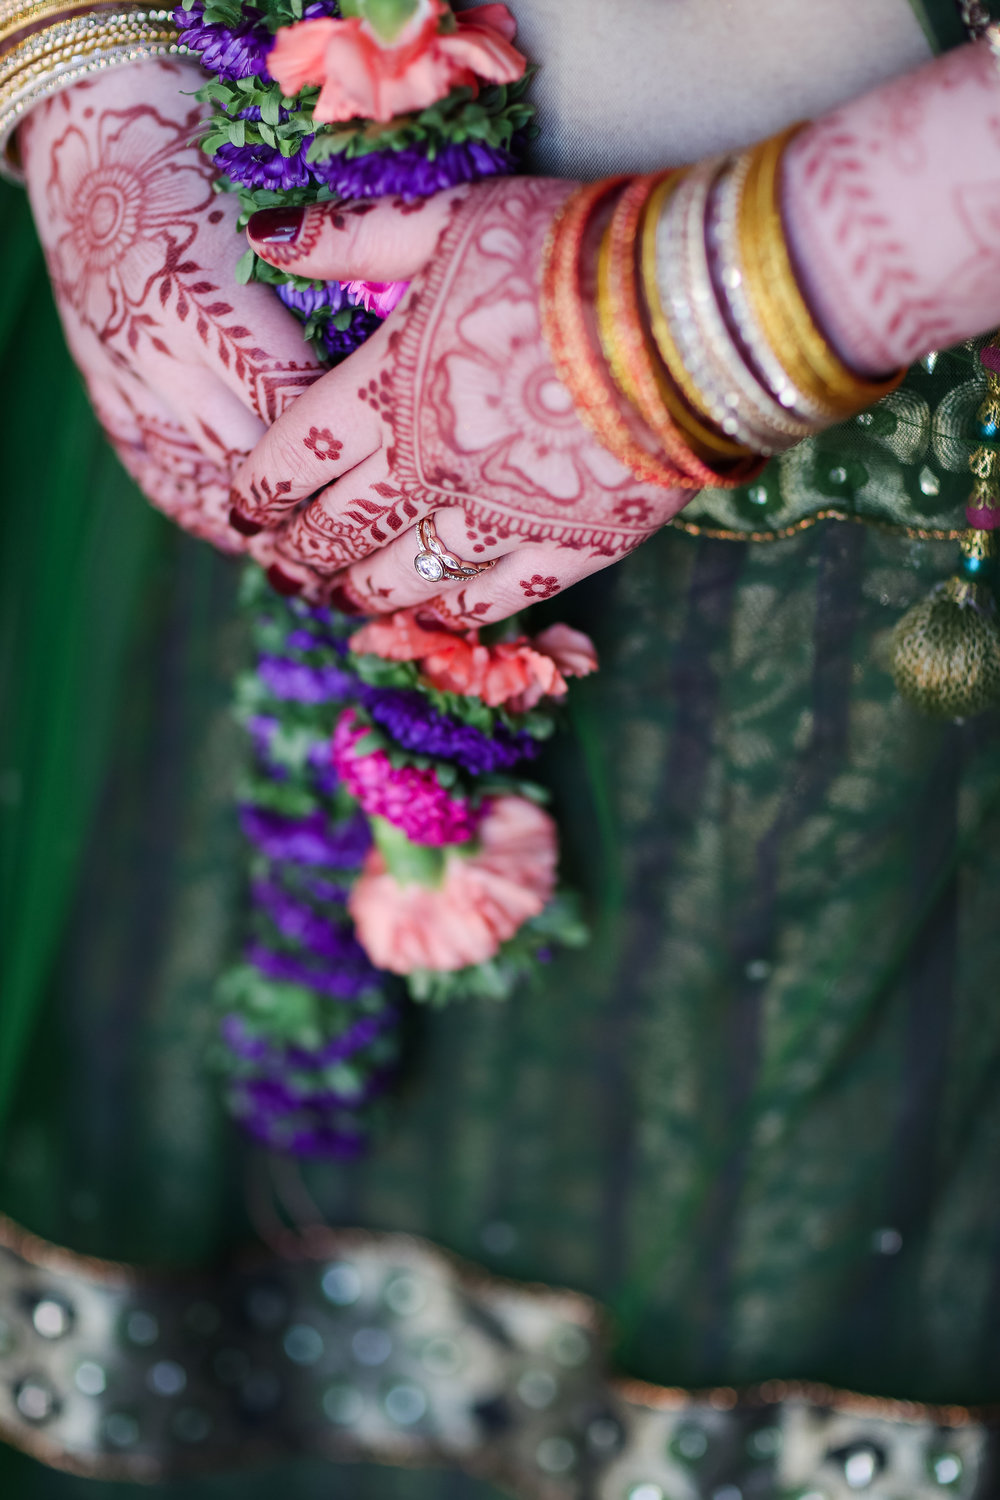 Beswoon_IndianFusion_0178.jpg